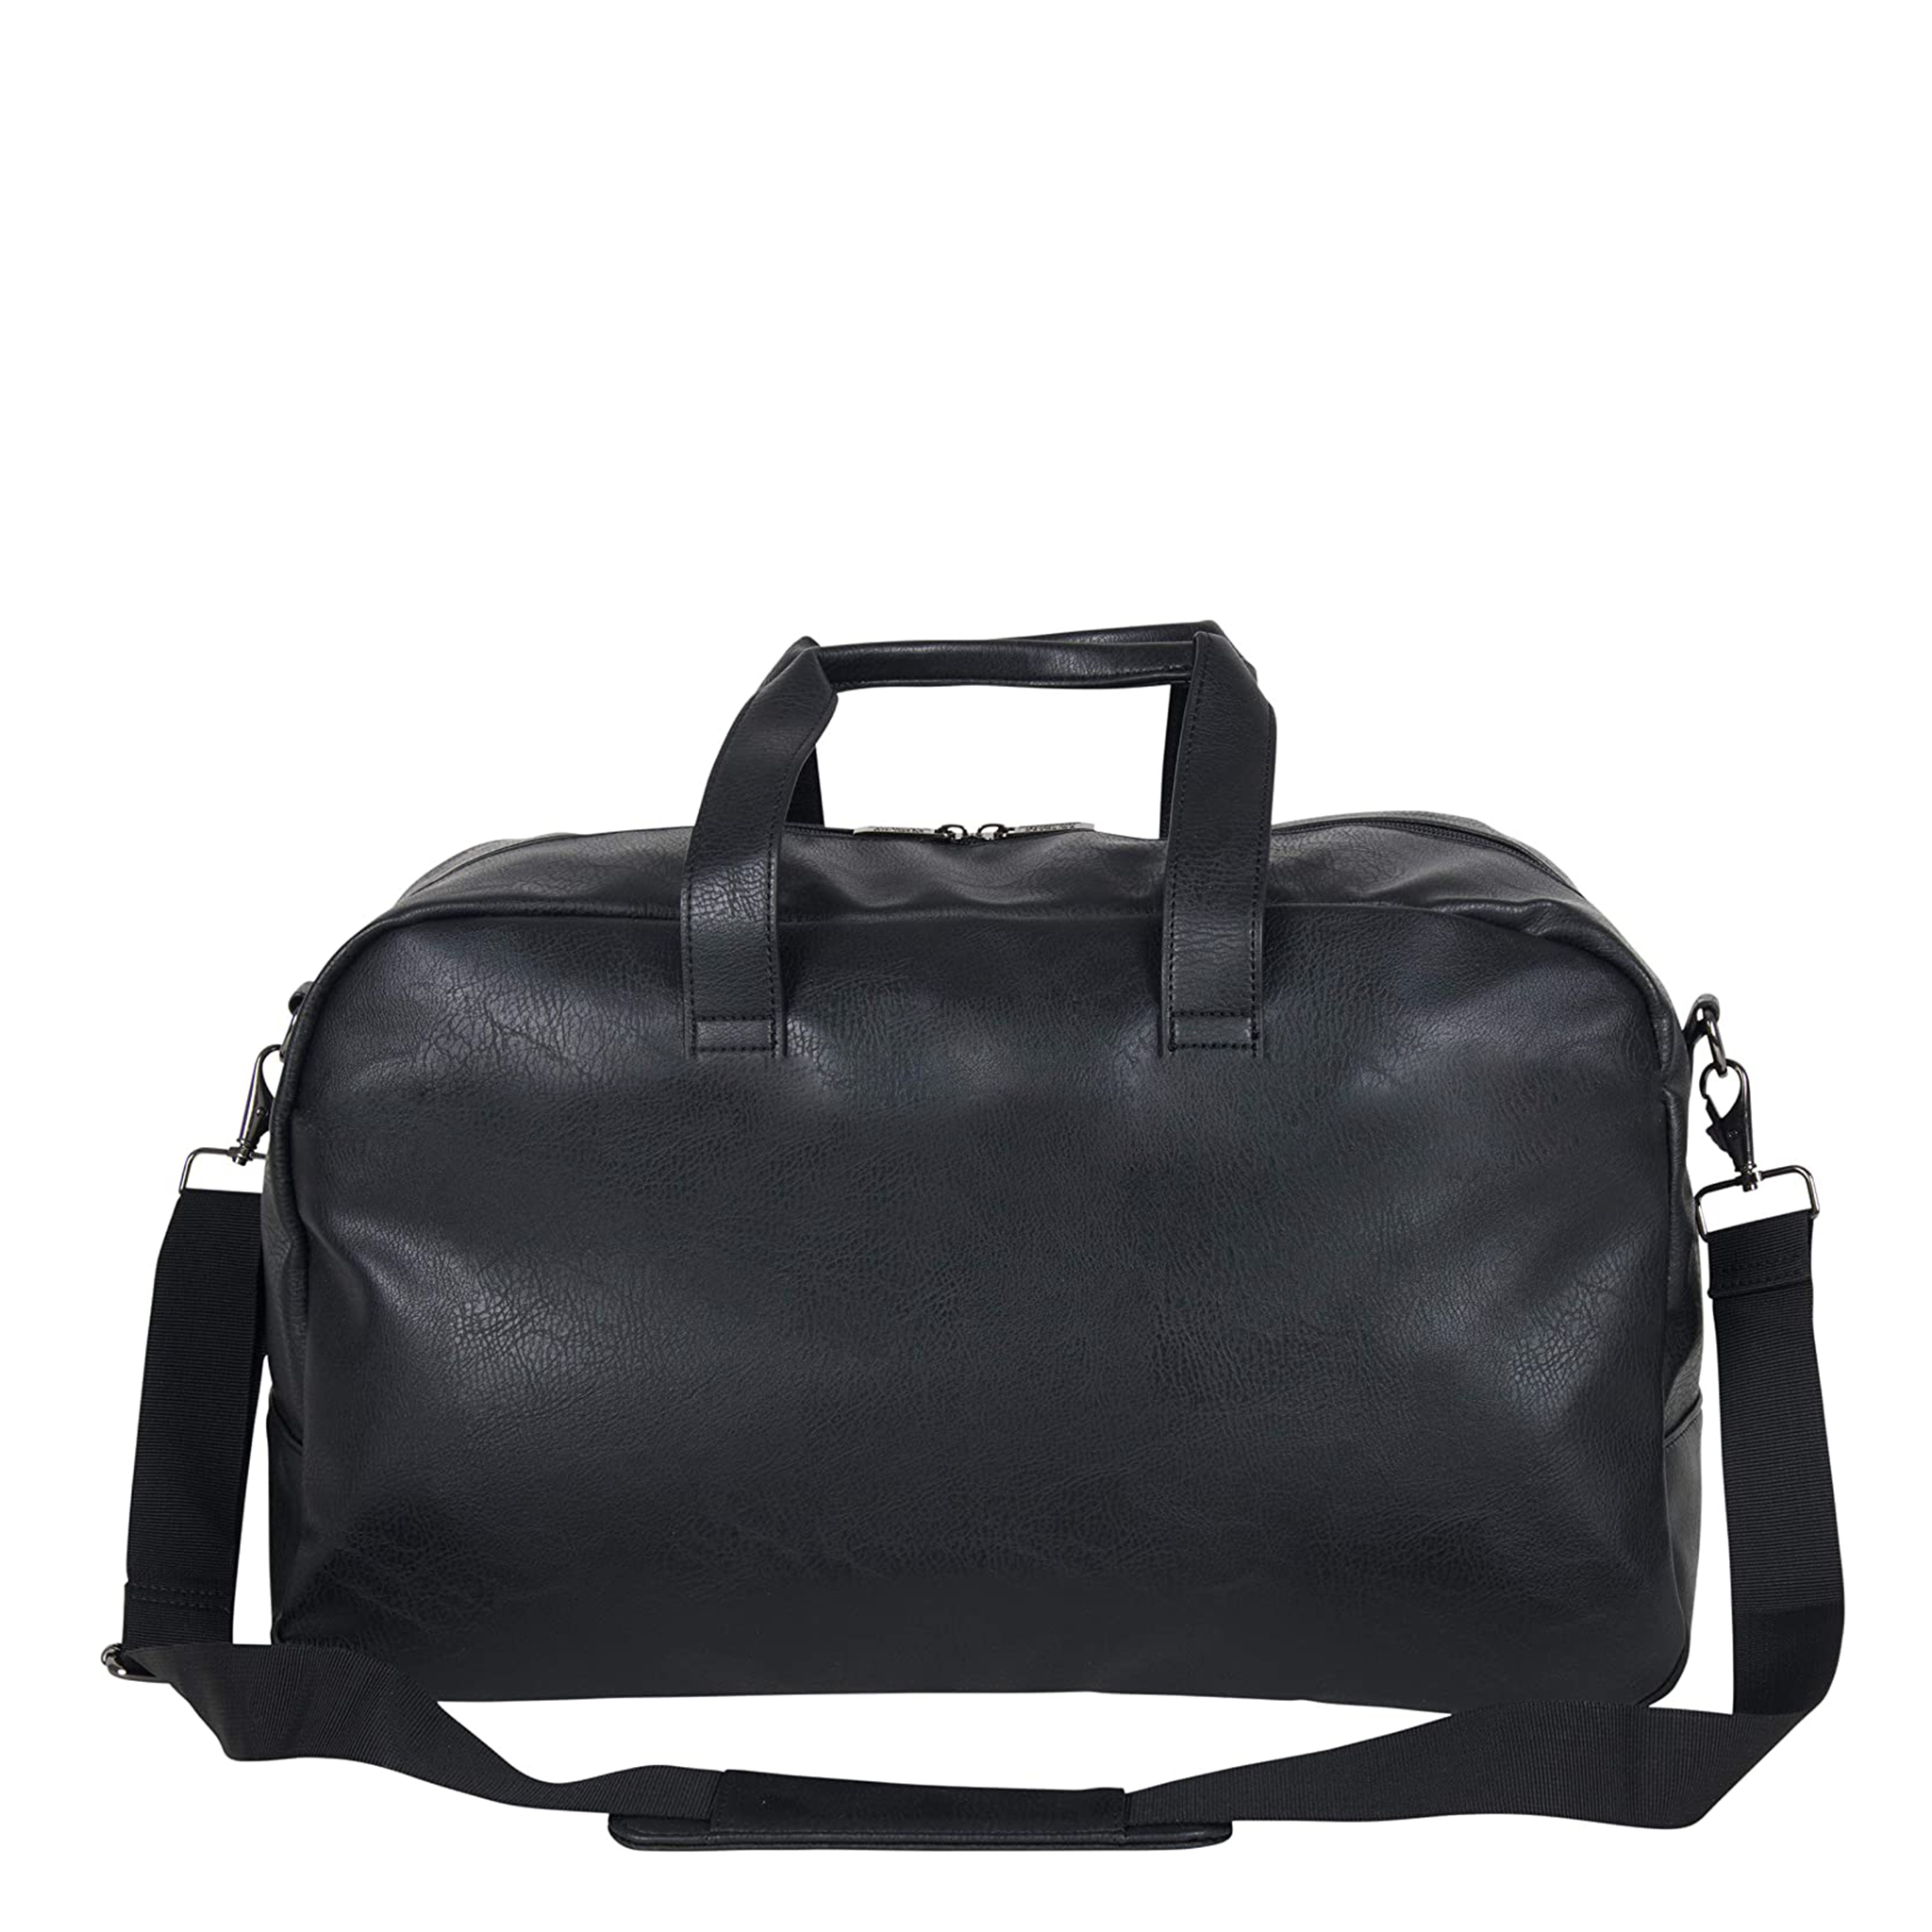 Leatherette Carry-on Duffel Bag